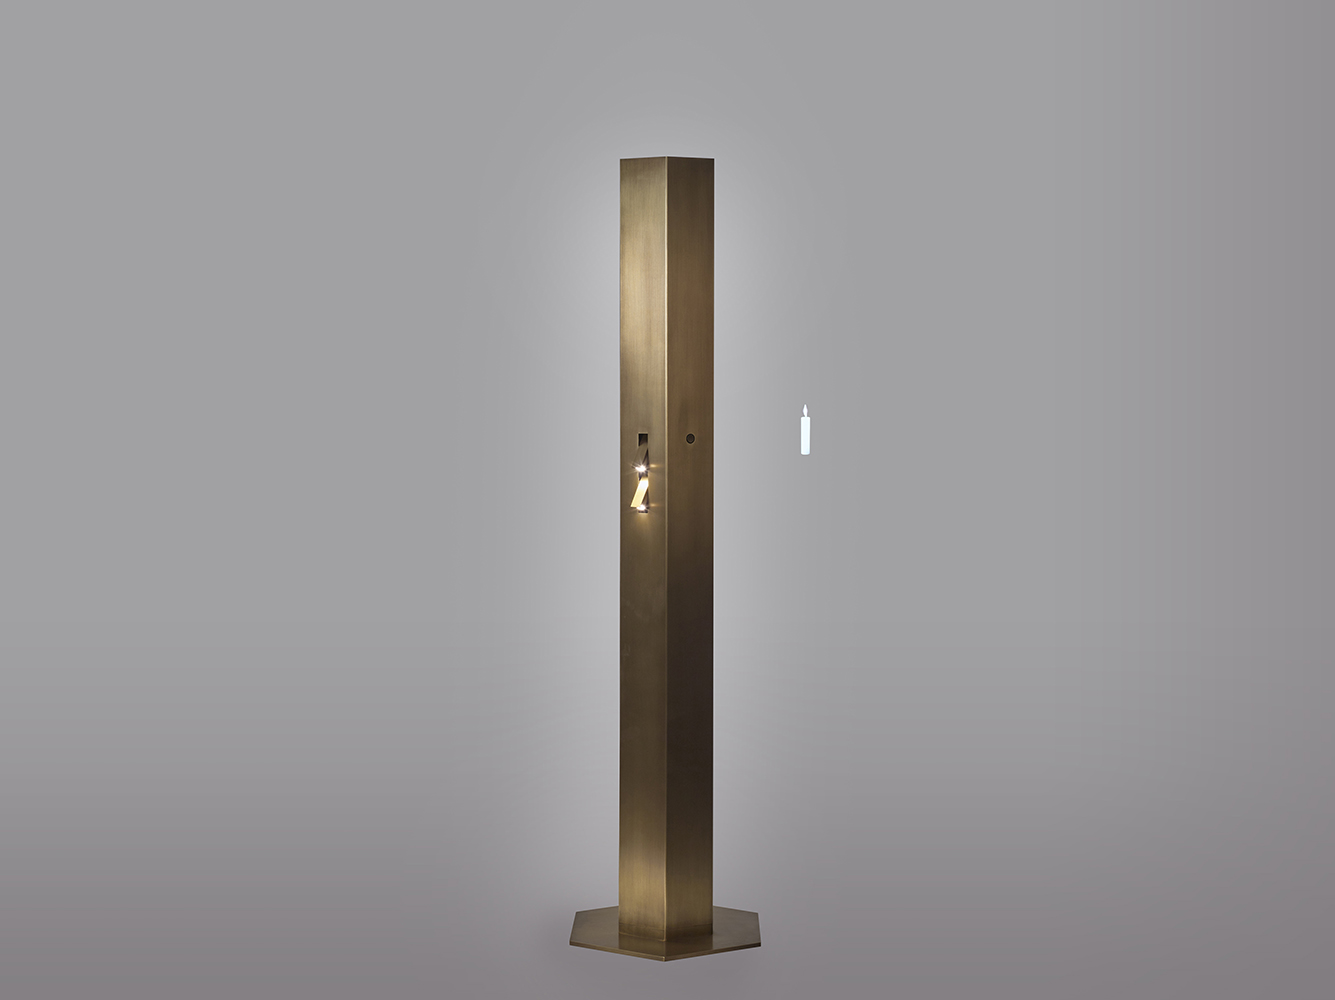 Aurora_floor lamp, 2016, Hammered bronze, 25x25x178cm, Manufactured by PROMEMORIA, Photo by Daniele Cortese